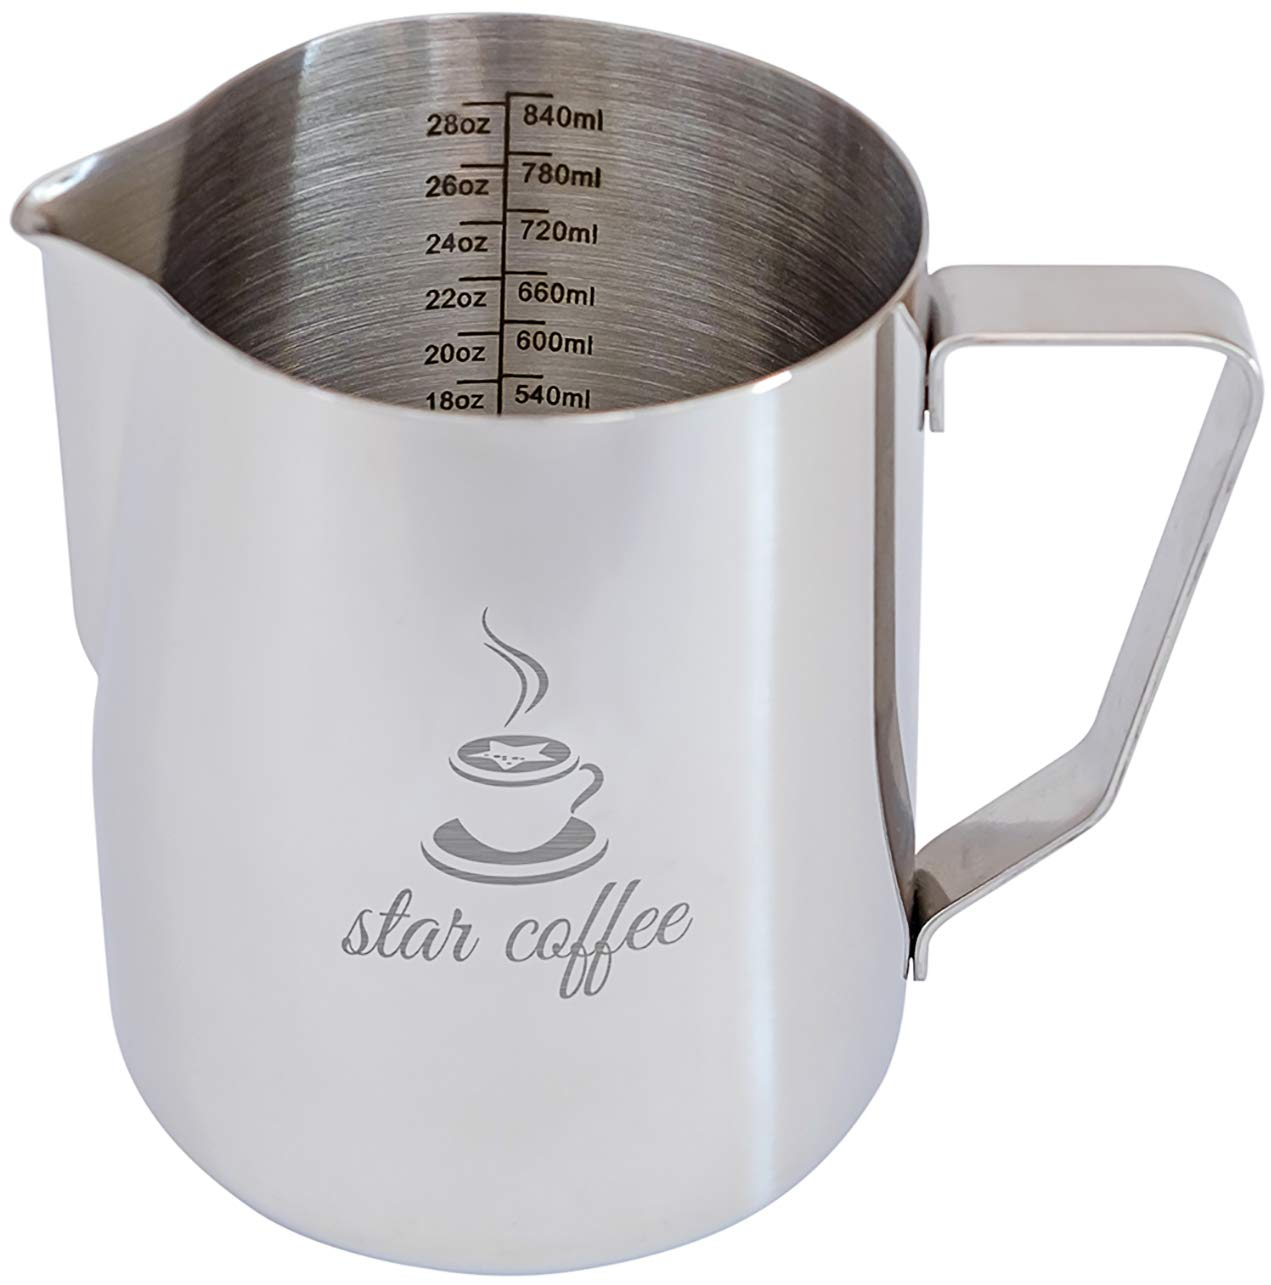 Star Coffee 32, 20 or 12oz Stainless Steel Milk Frothing Pitcher - Measurements on Both Sides Inside Plus eBook & Microfiber Cloth - Perfect for Espresso Machines, Milk Frothers, Latte Art